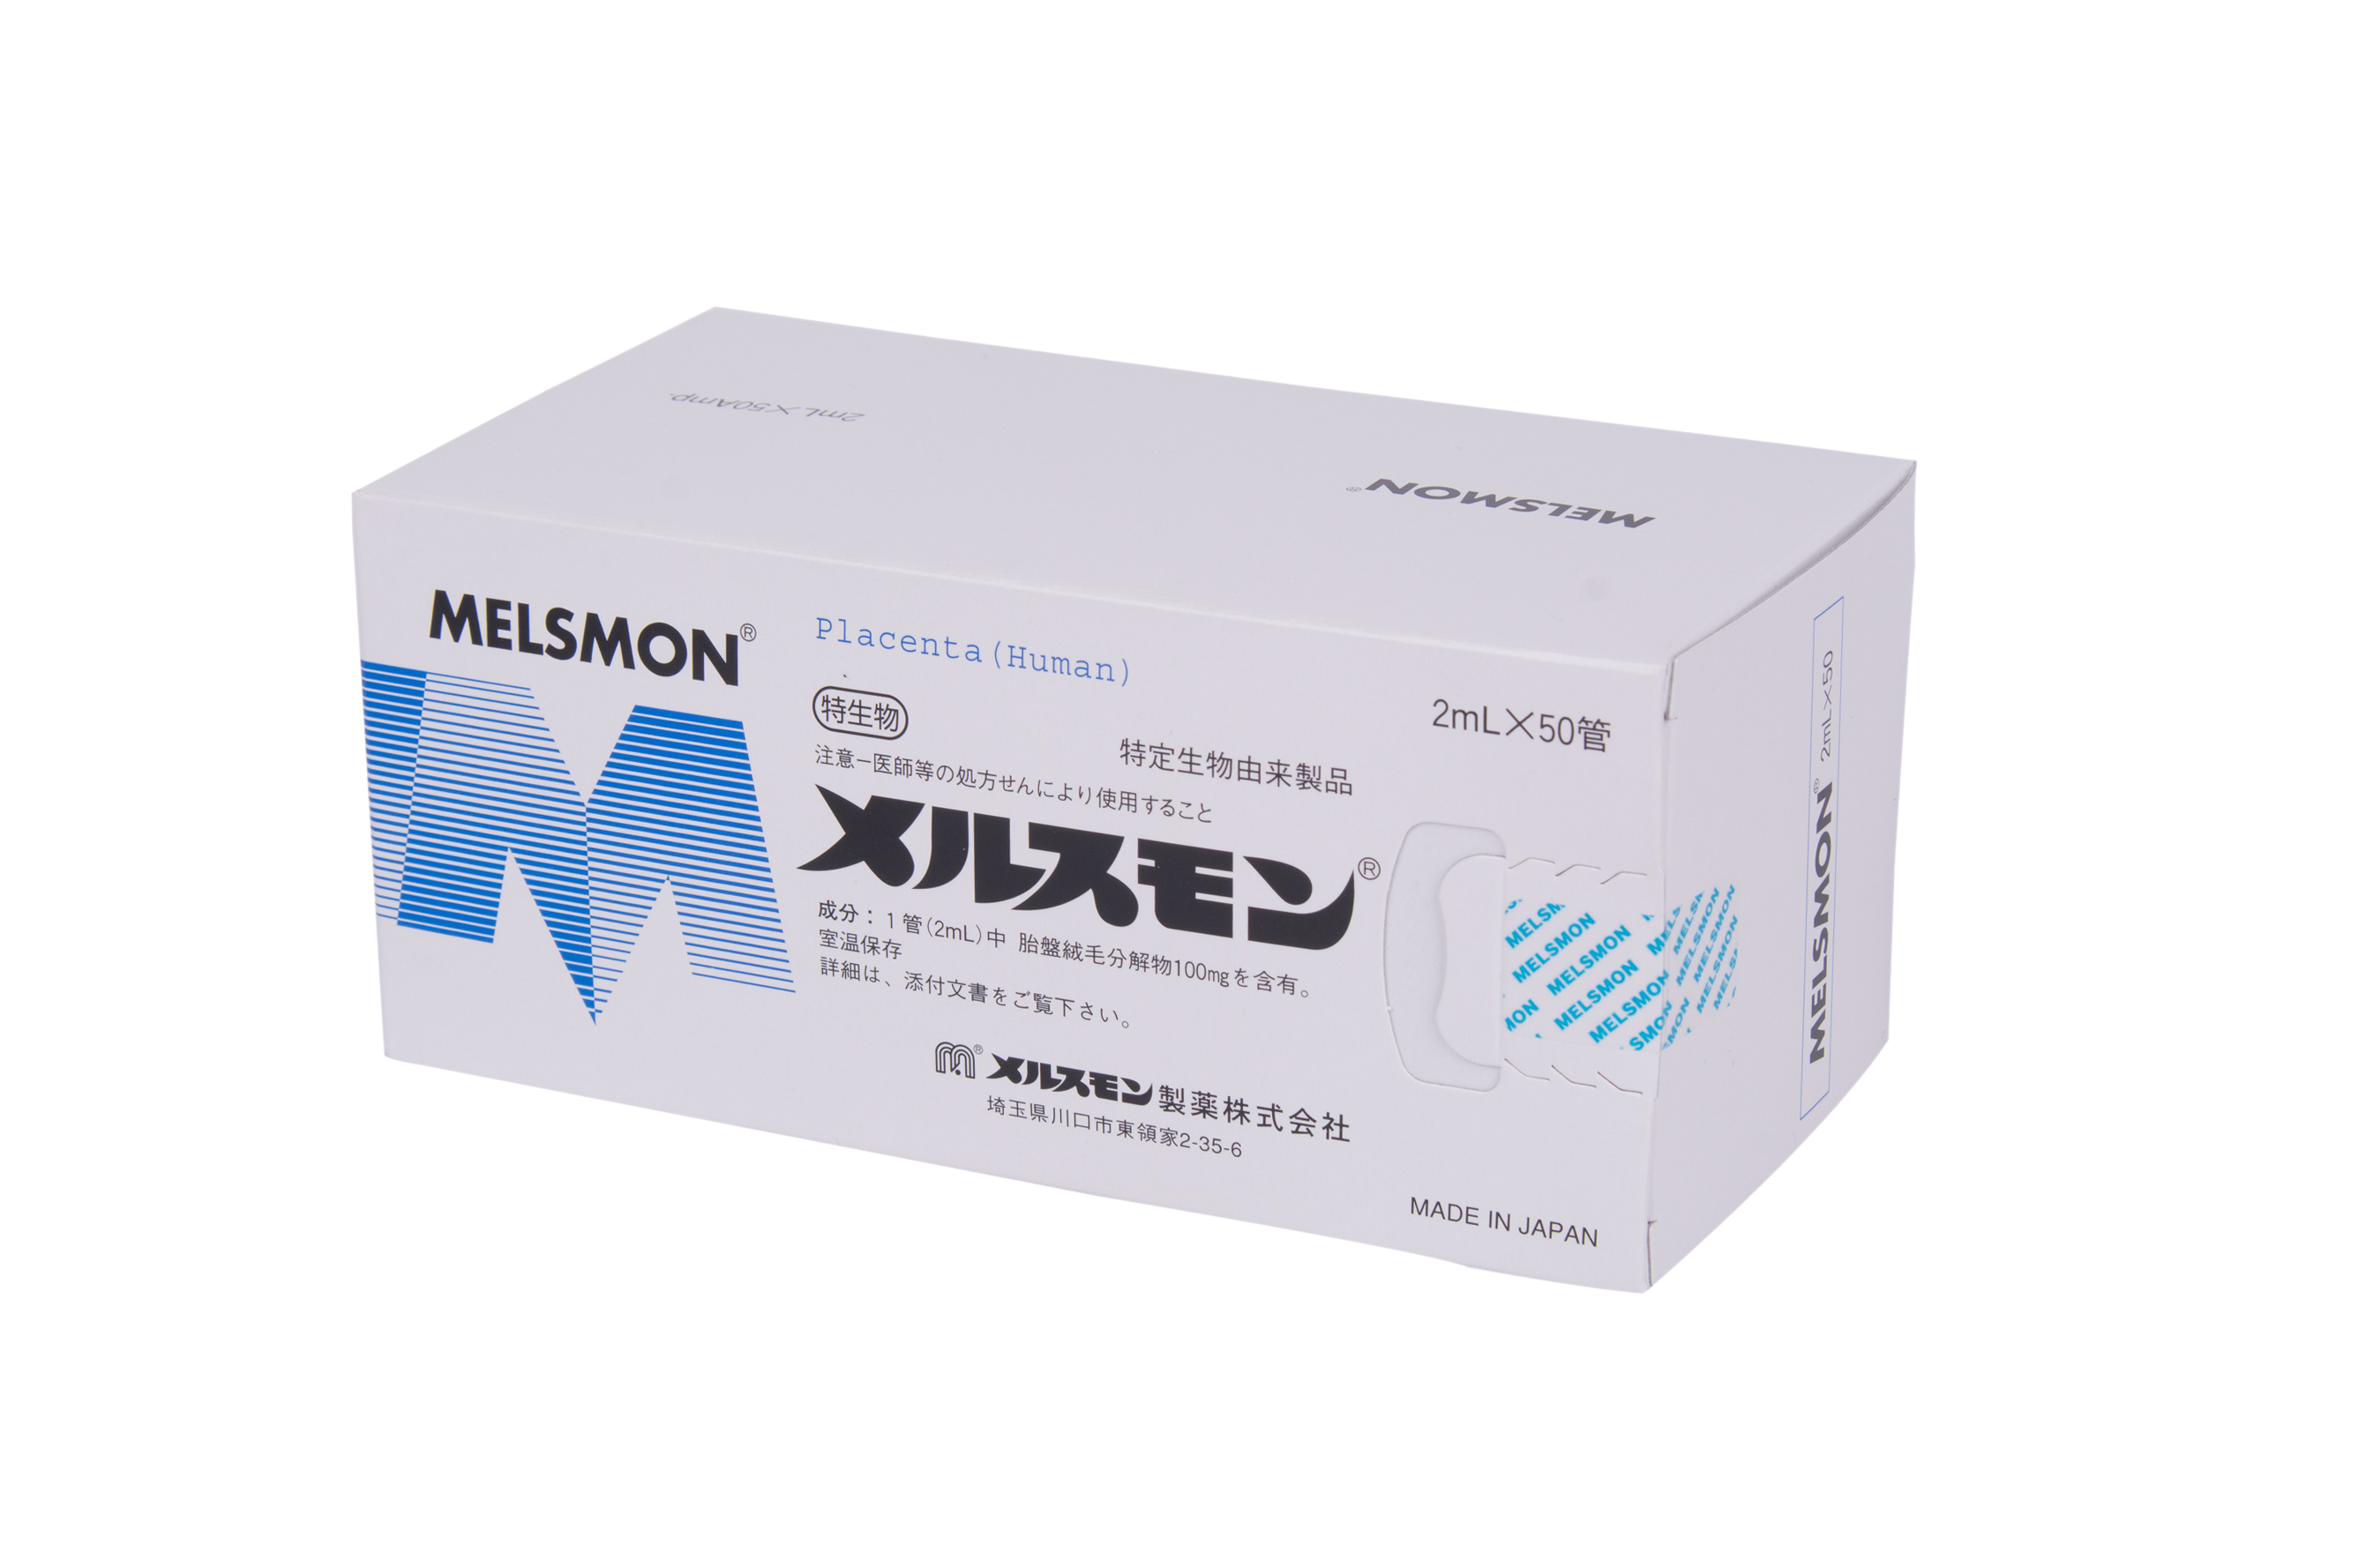 Injection Melsmon Human Placenta with Quality